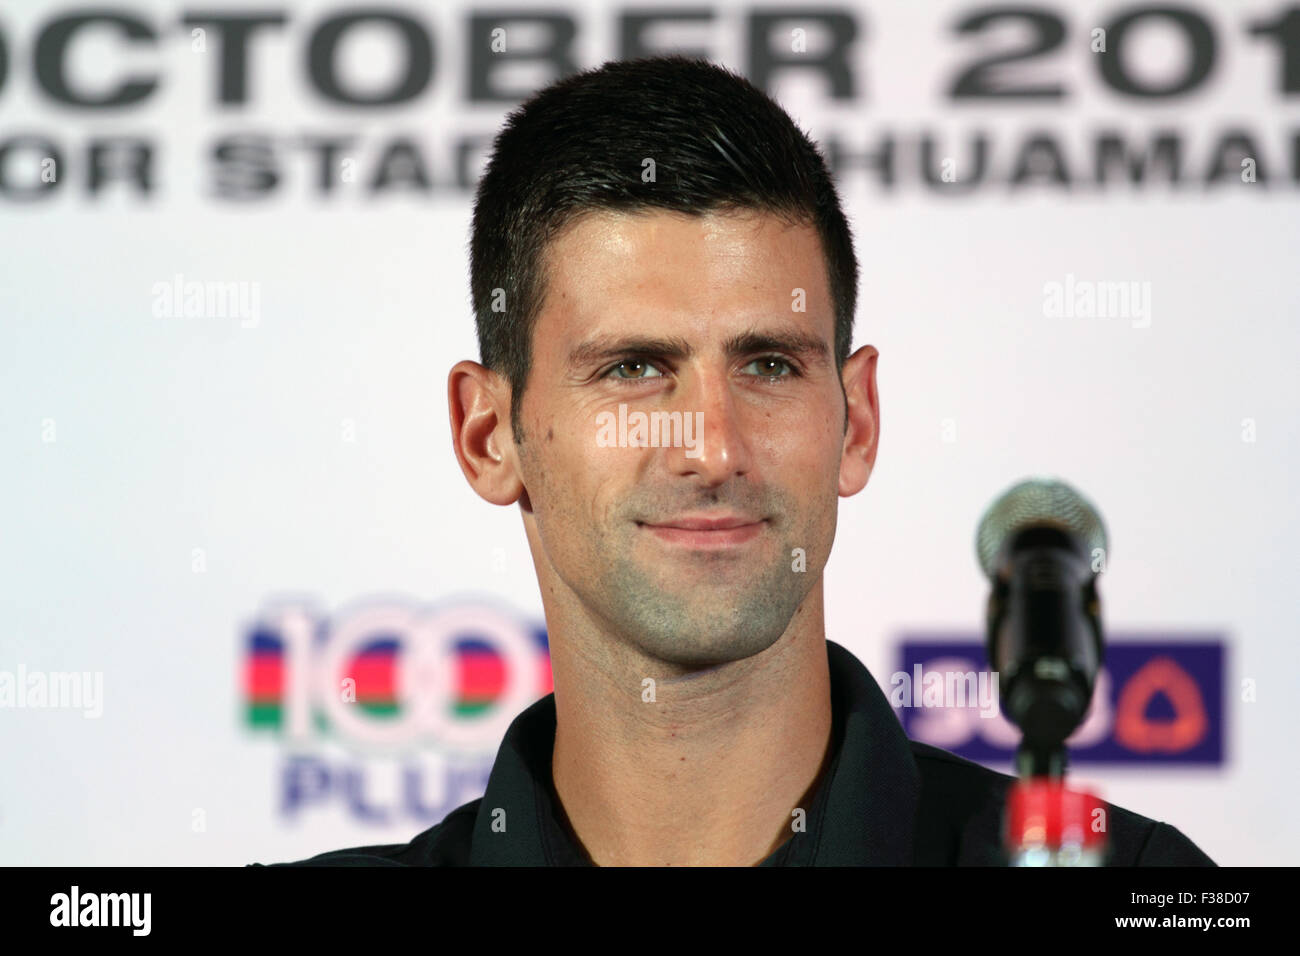 Bangkok Thailand. 1st October 2015. Tennis player Novak Djokovic during a press conference. Djokovic is set to play - Stock Image